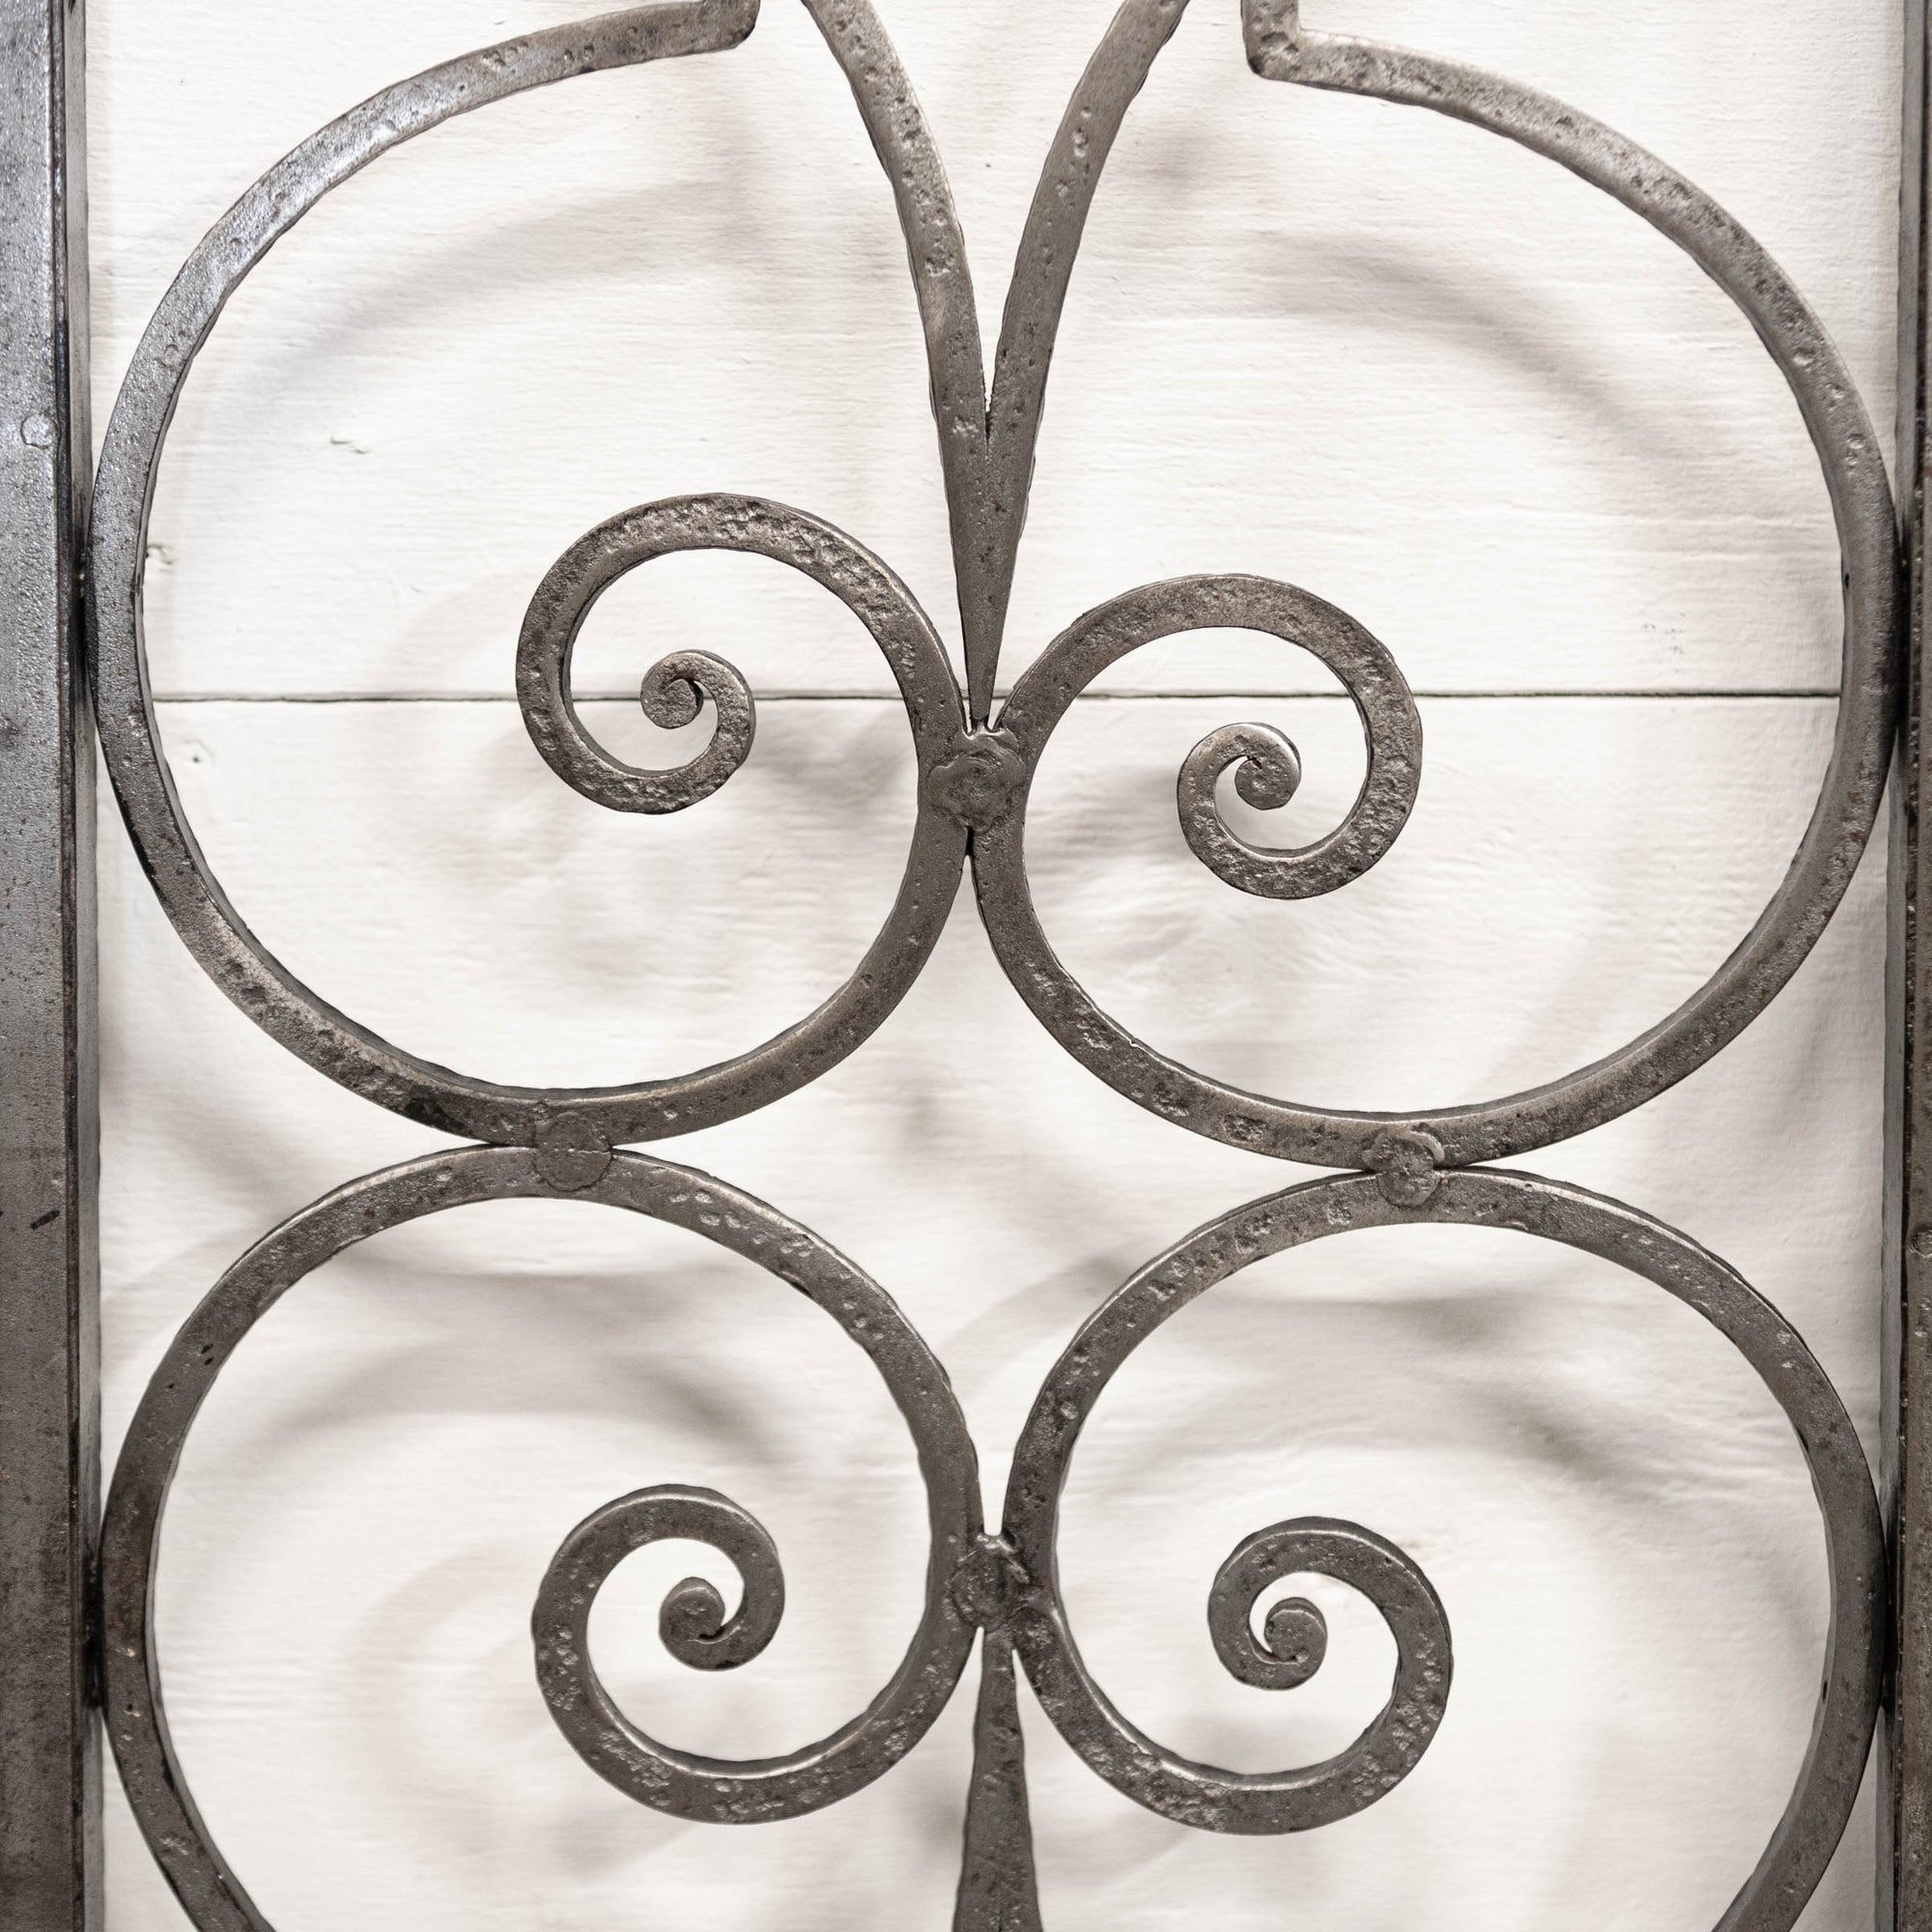 Antique pair of decorative iron doors | The Architectural Forum